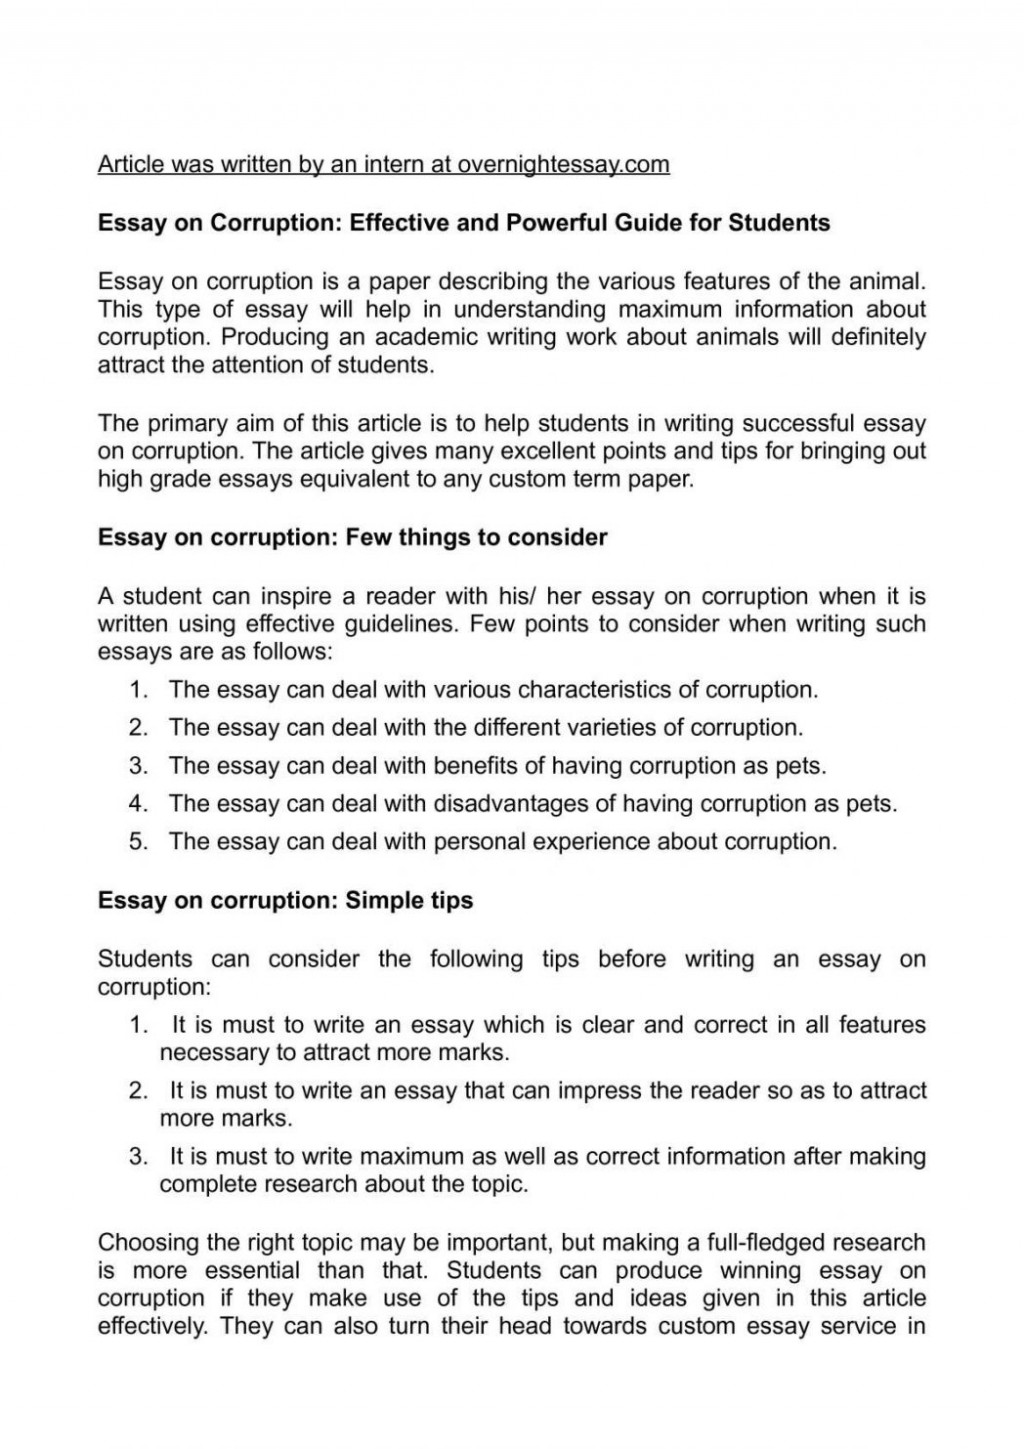 015 How To Write This I Believe Essay Easy Essays Calam Atilde Copy O On Corruption Effective Samples Good Topics Template 1048x1483 Fantastic A Things What Large